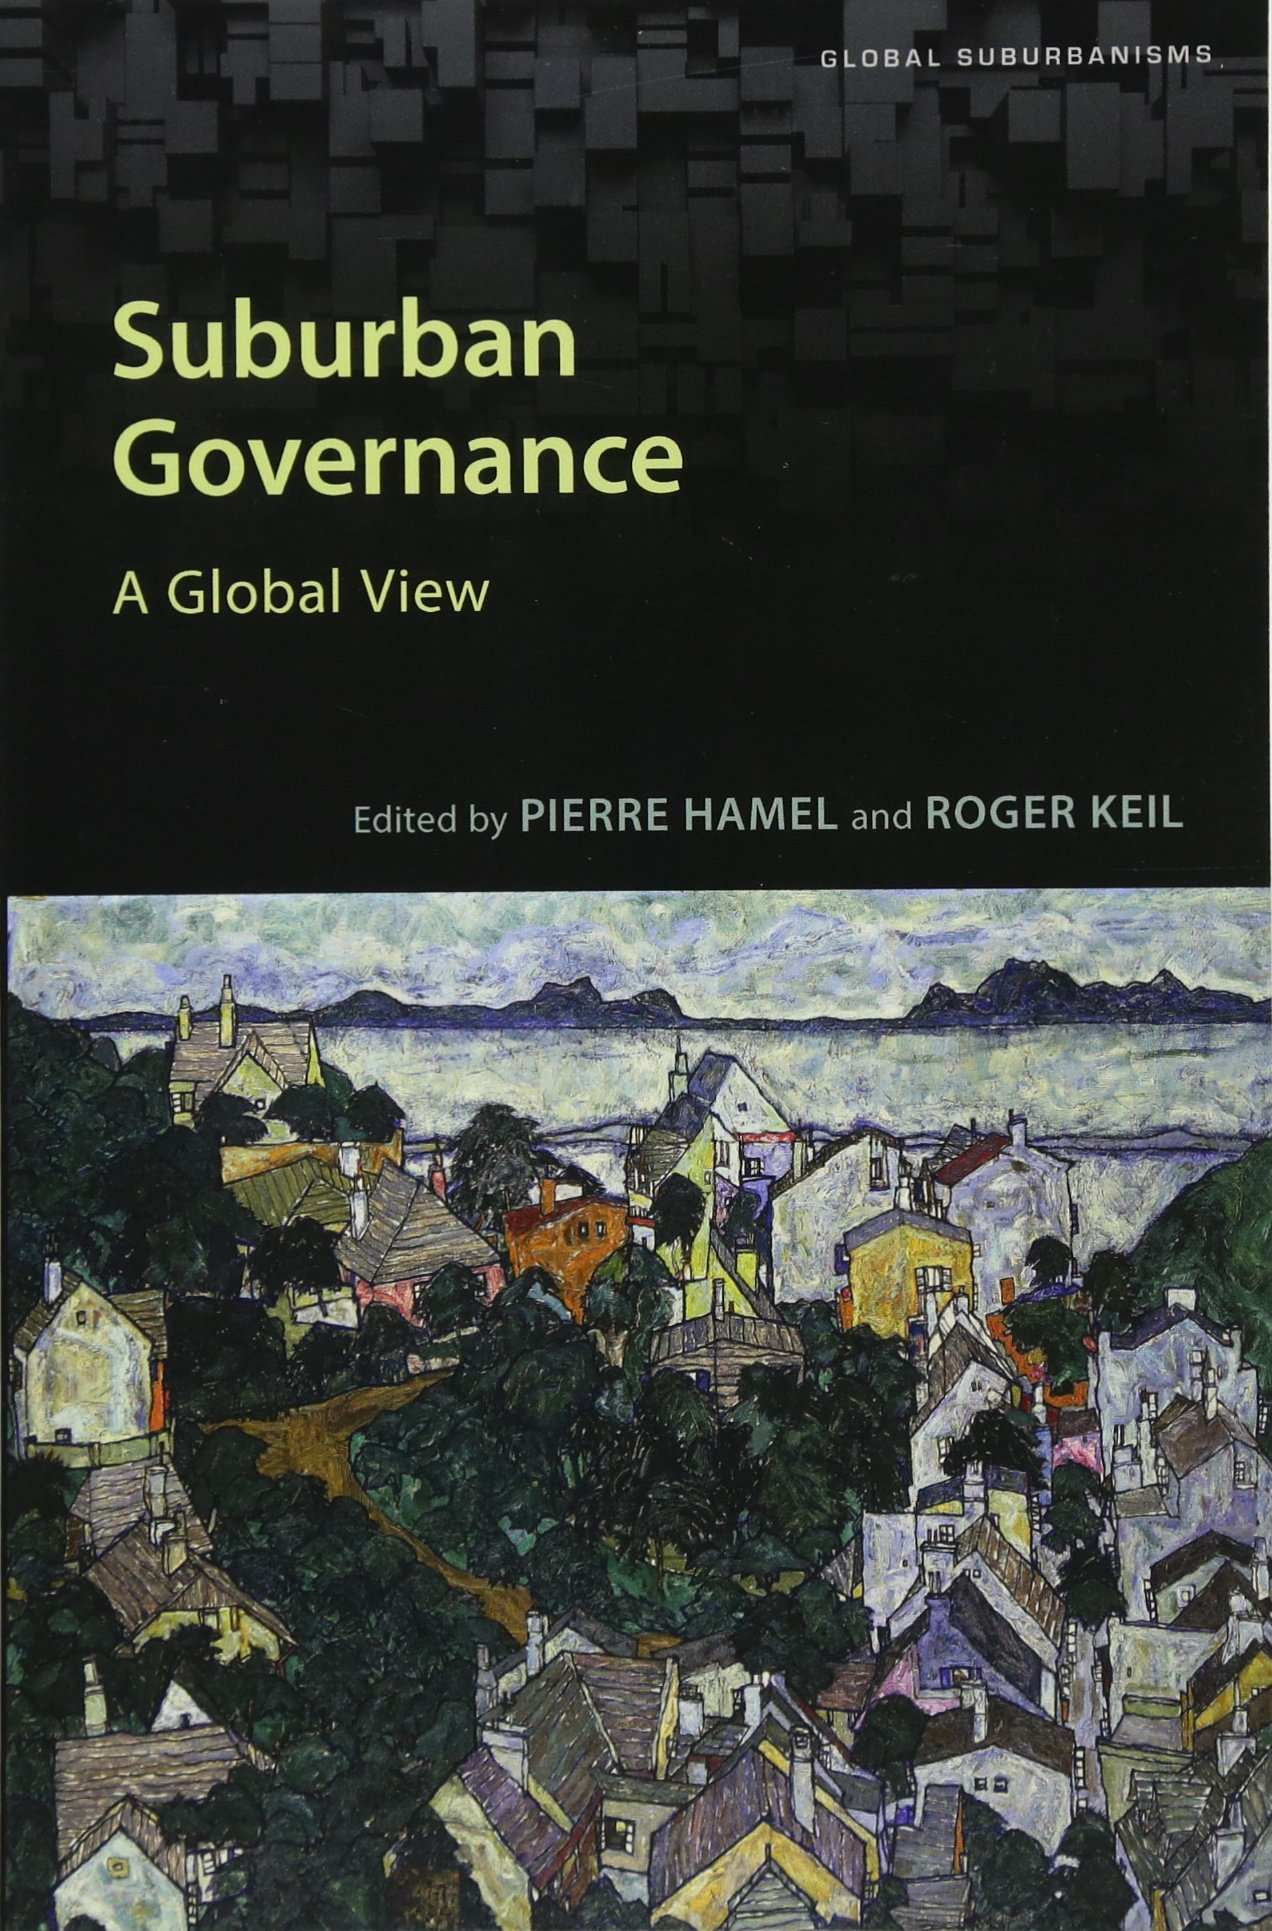 Suburban Governance: A Global View (Global Suburbanisms): Pierre